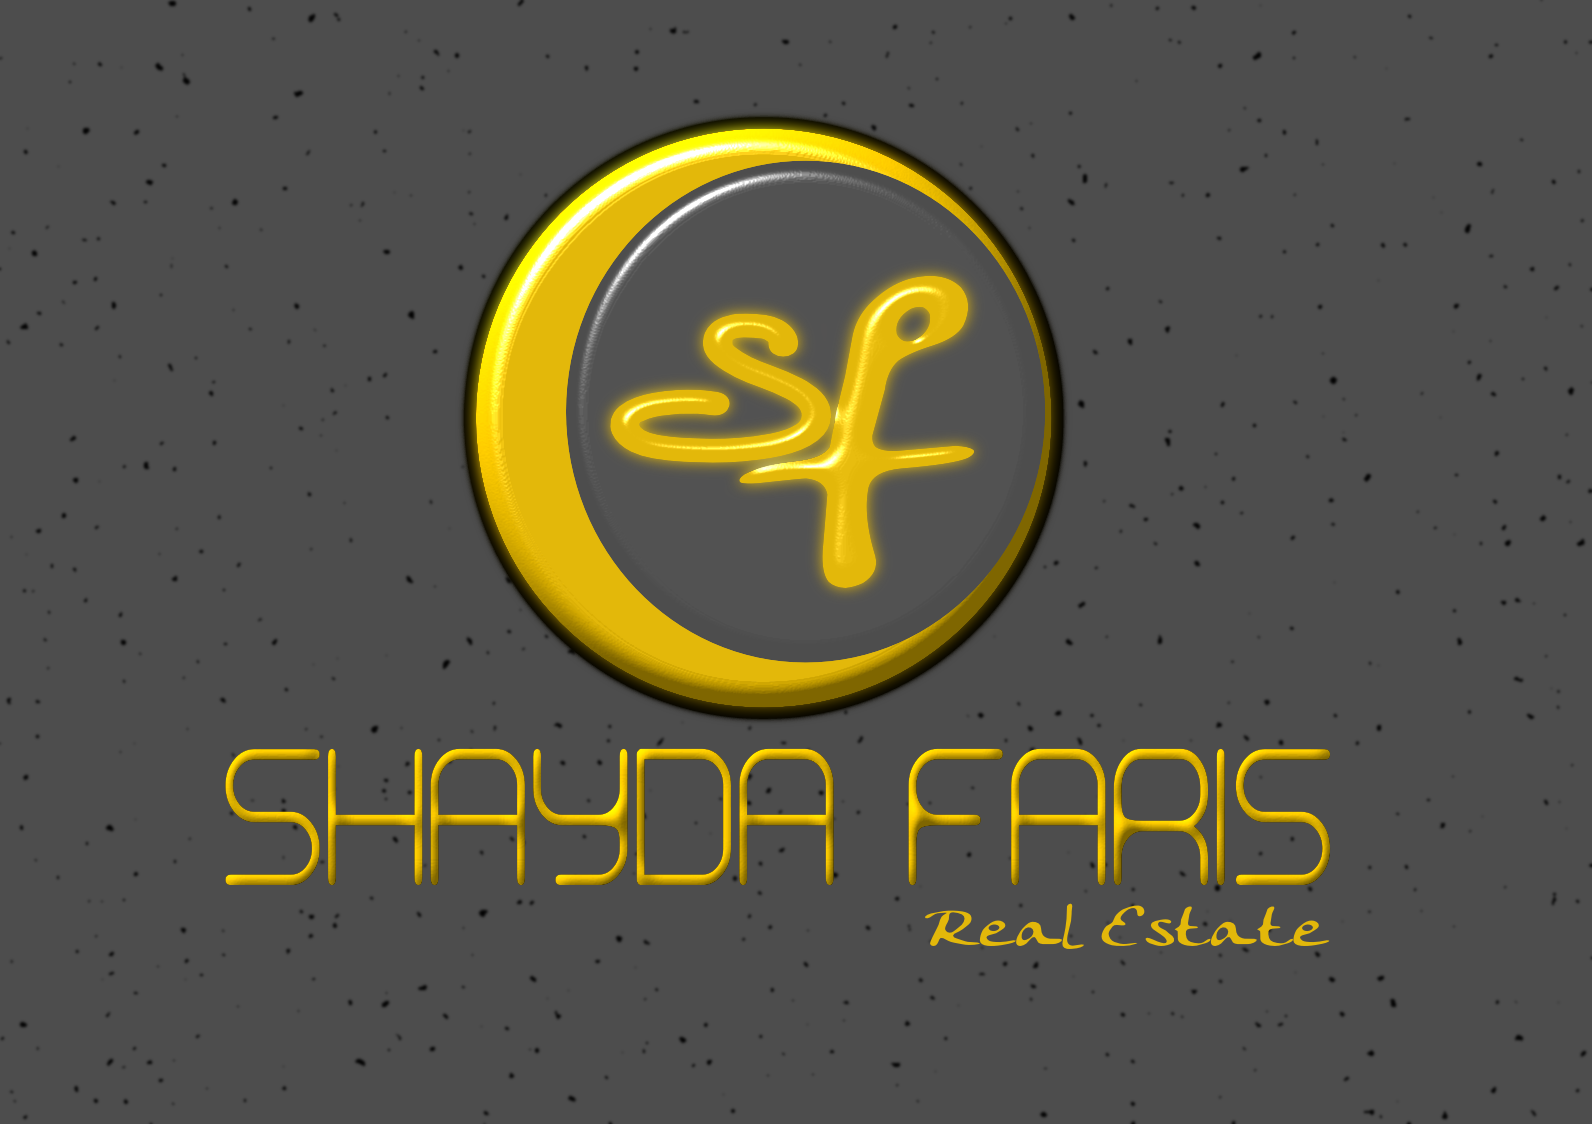 Logo Design by Joseph calunsag Cagaanan - Entry No. 62 in the Logo Design Contest Unique Logo Design Wanted for Shayda Faris.